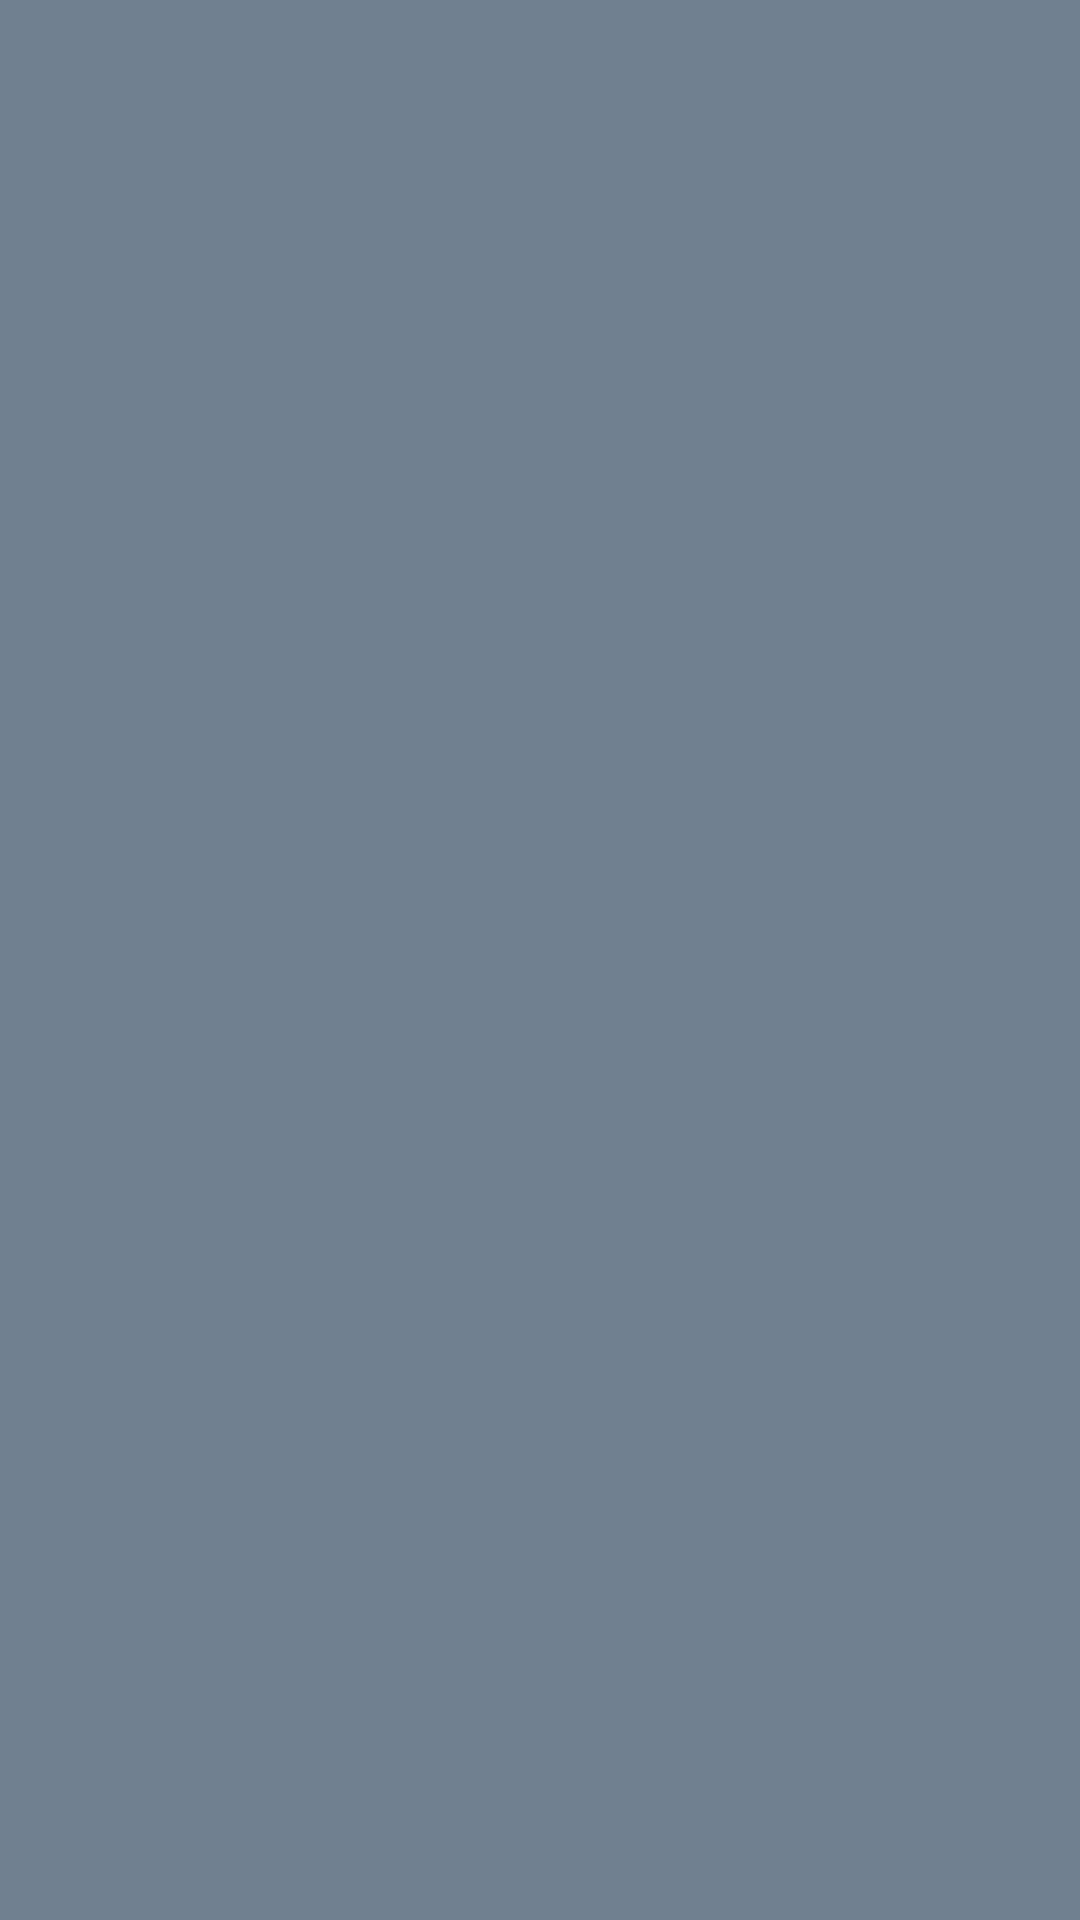 1080x1920 Slate Gray Solid Color Background